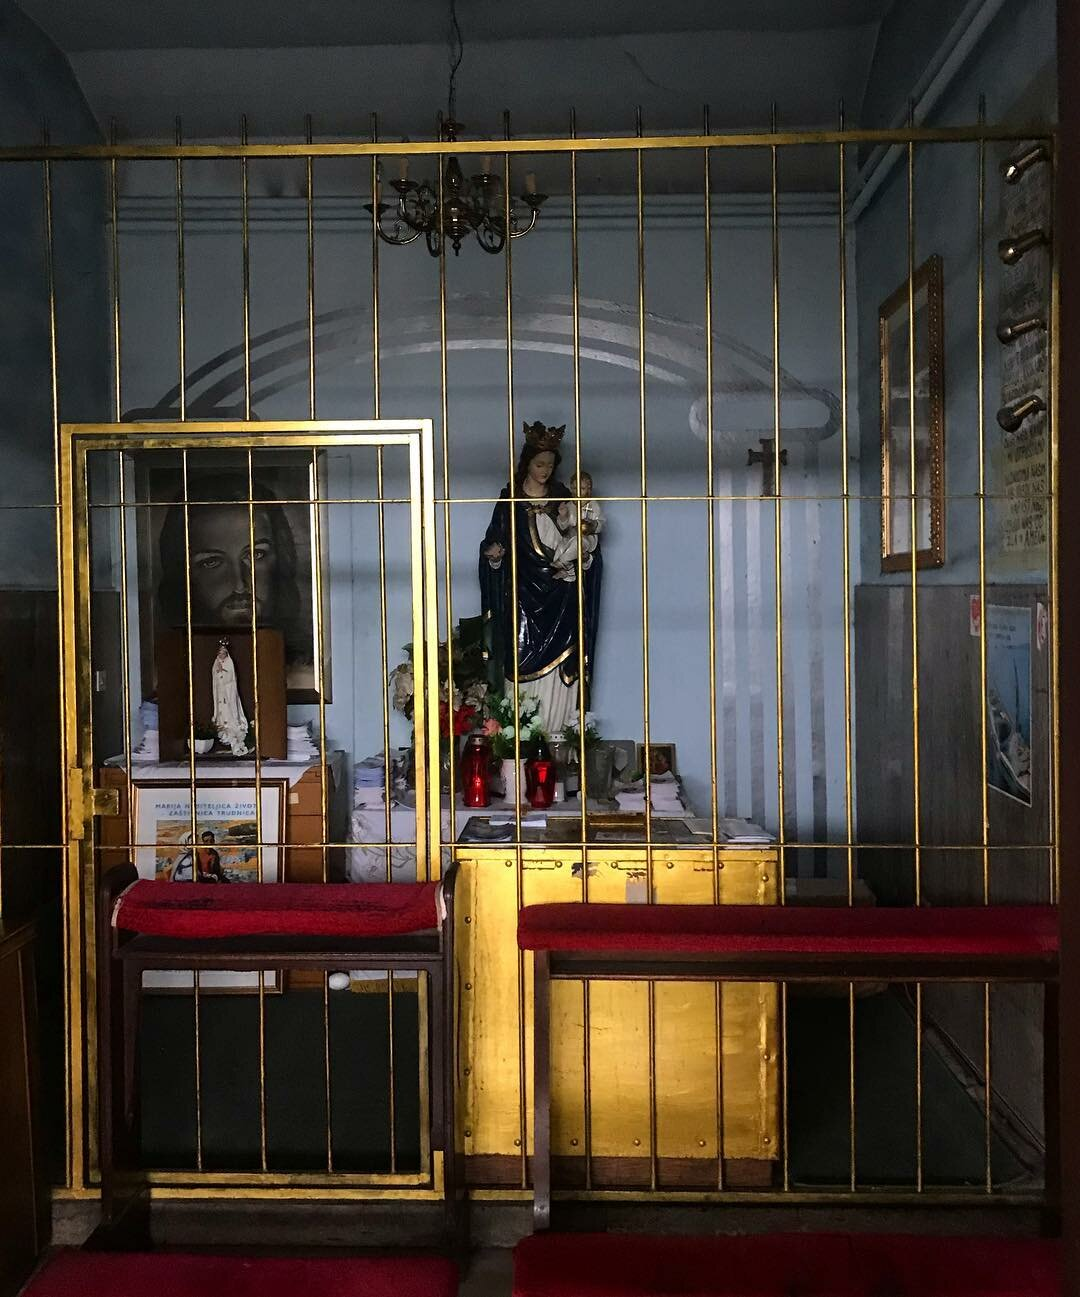 A shrine to Jesus, located inside the train station.